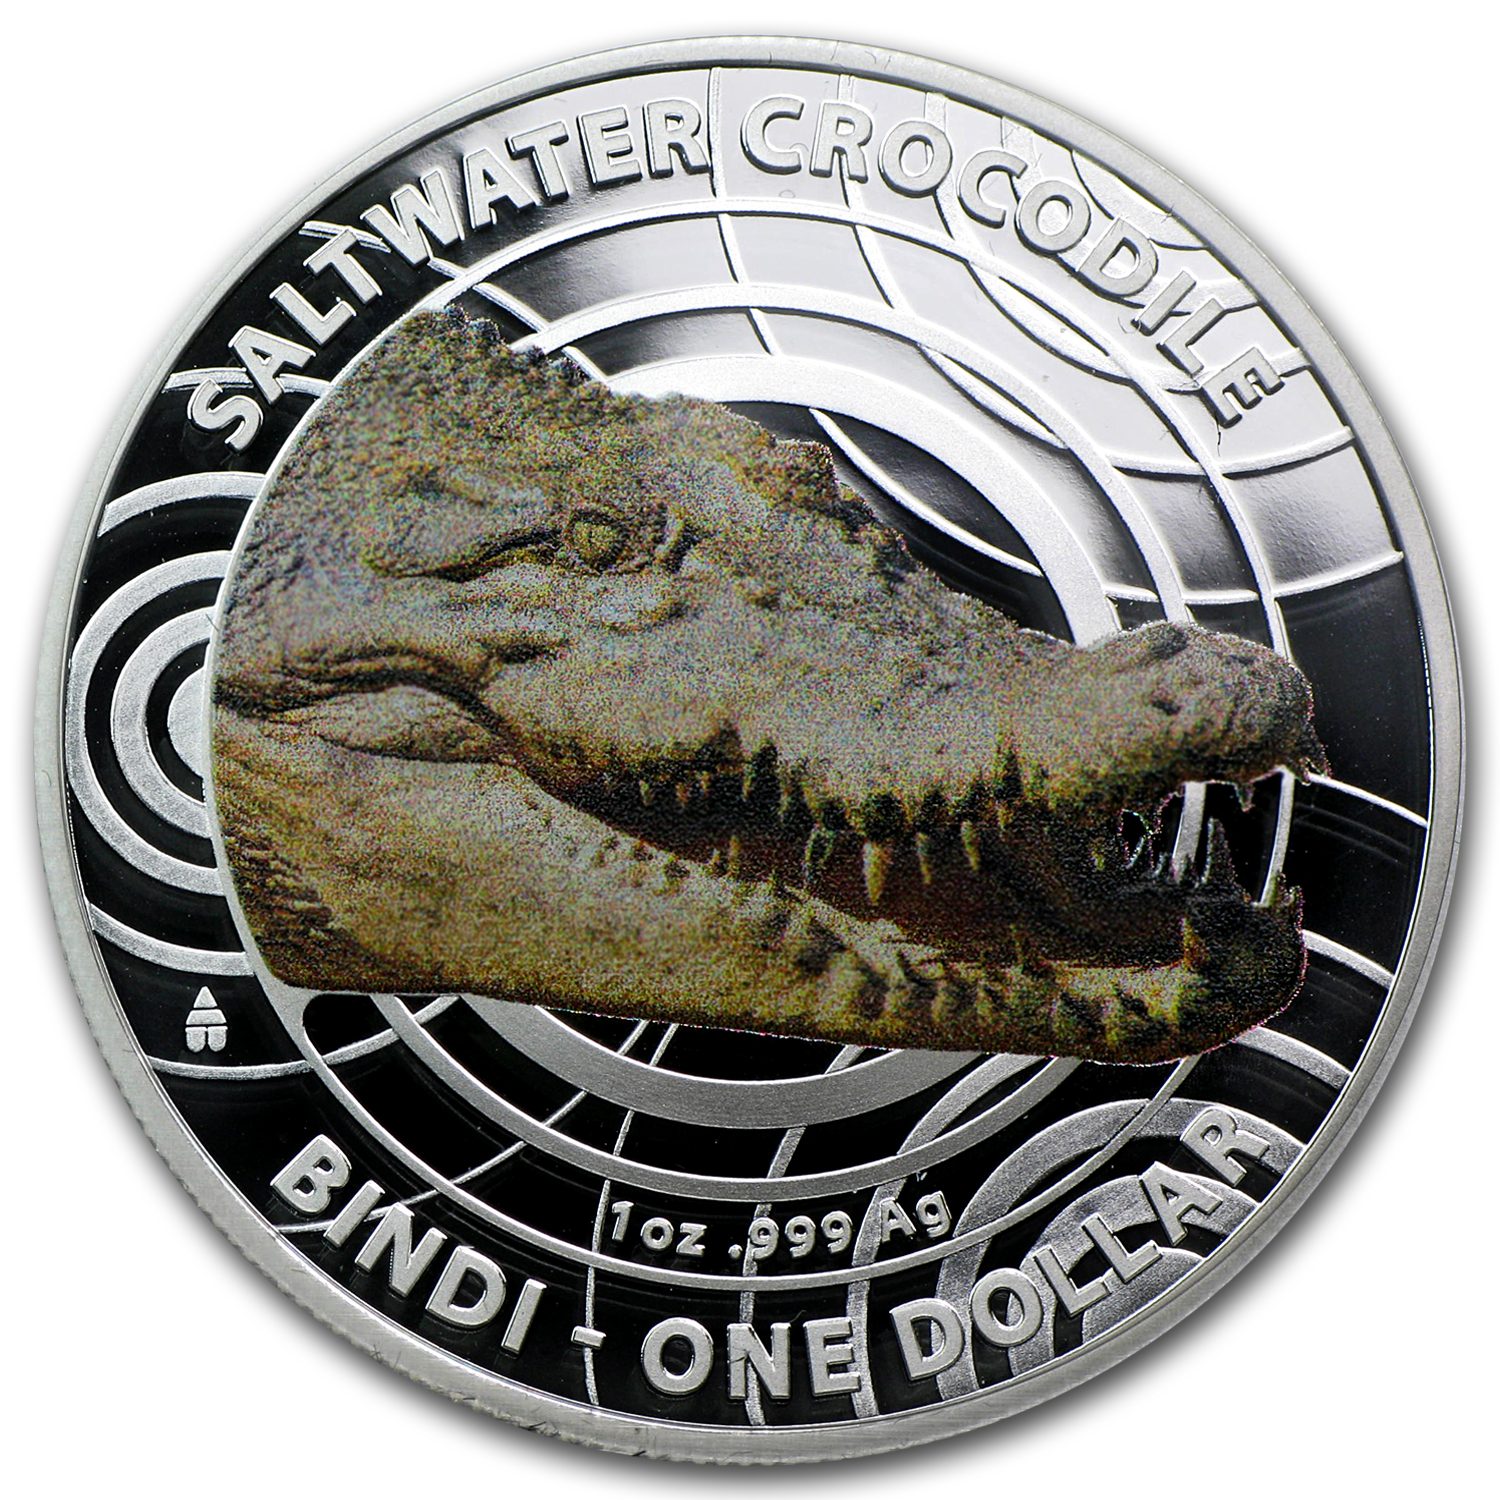 Australian Mint 2013 Silver Saltwater Crocodiles -Bindi - Colored